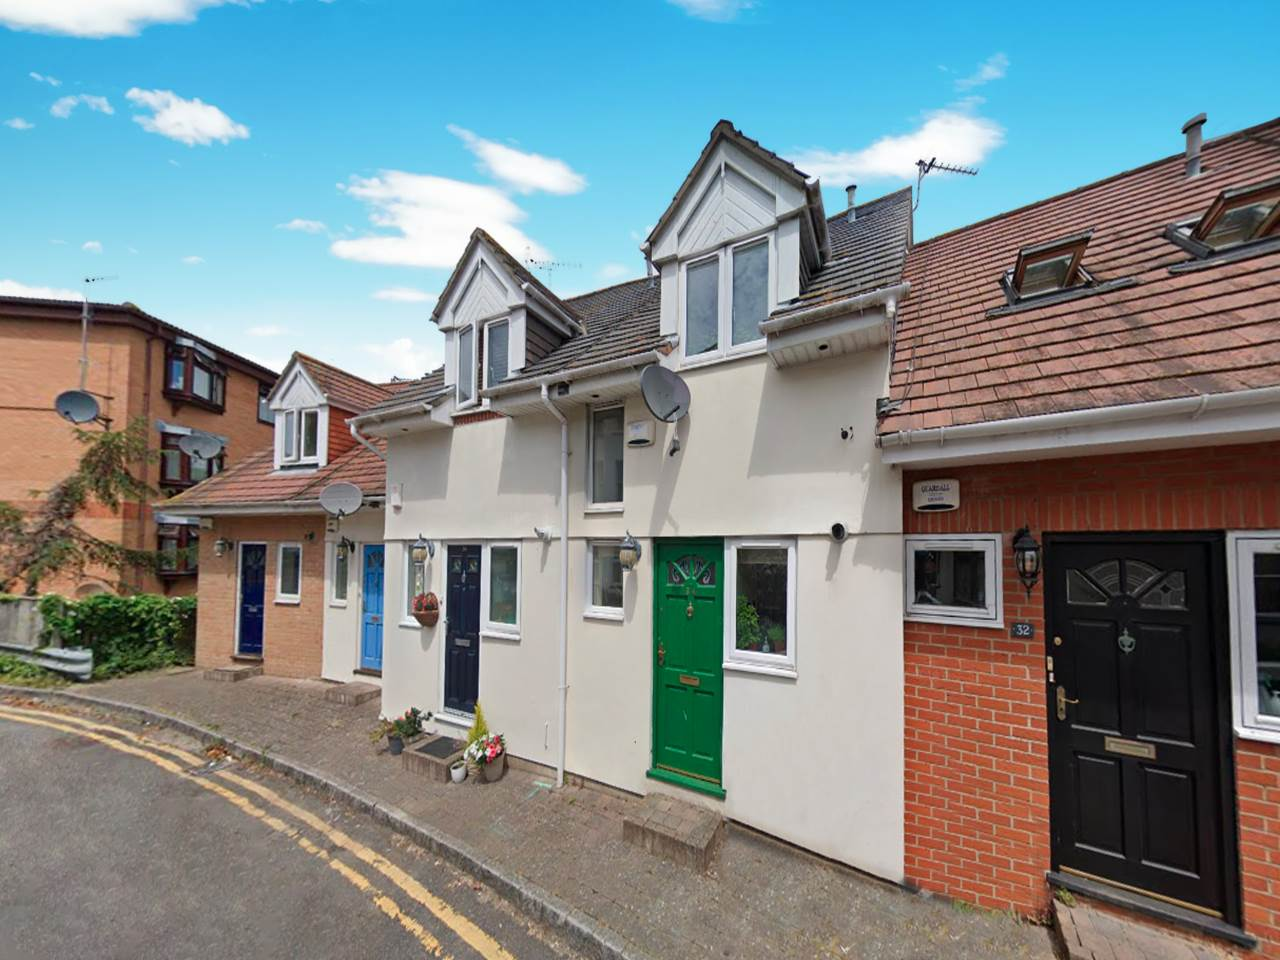 3 bed for sale in Norwich Road, Bournemouth - Property Image 1